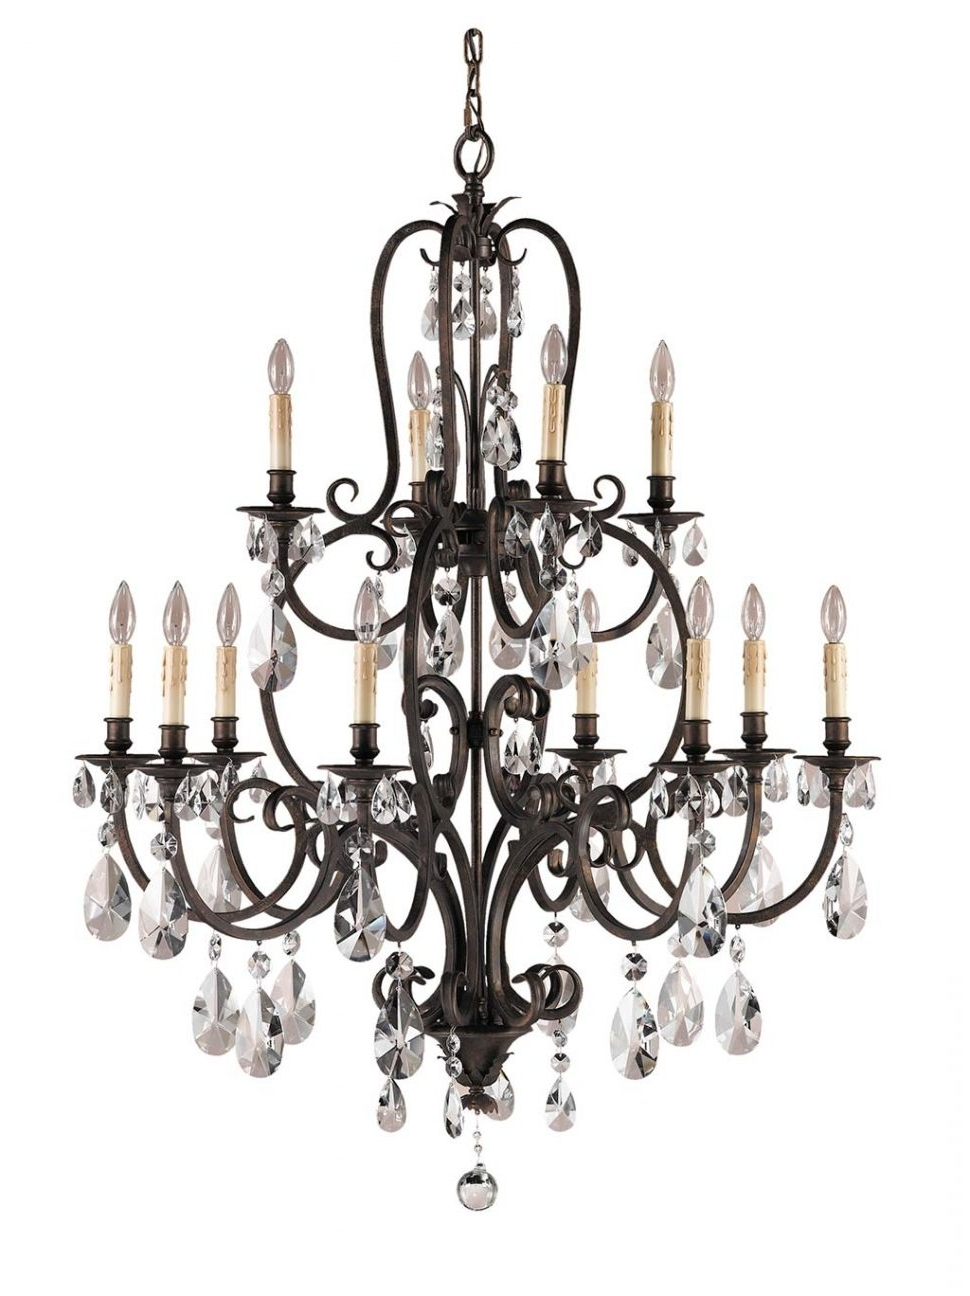 Trendy Chandeliers Design : Marvelous Formidable Murray Feiss Chandeliers Throughout Feiss Chandeliers (View 12 of 15)